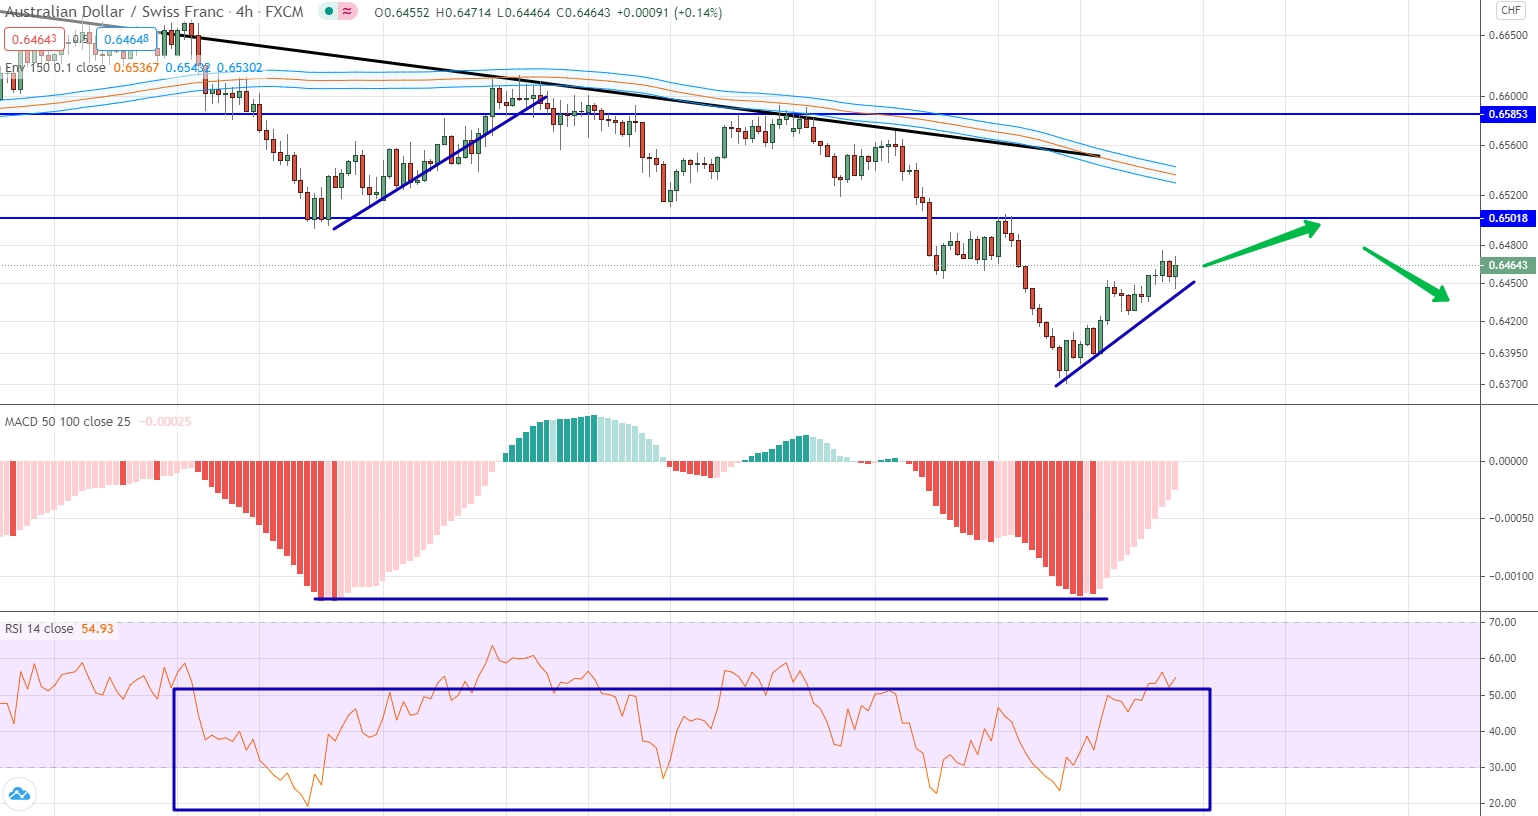 analysis of AUD/CHF by moving averages, RSI and MACD